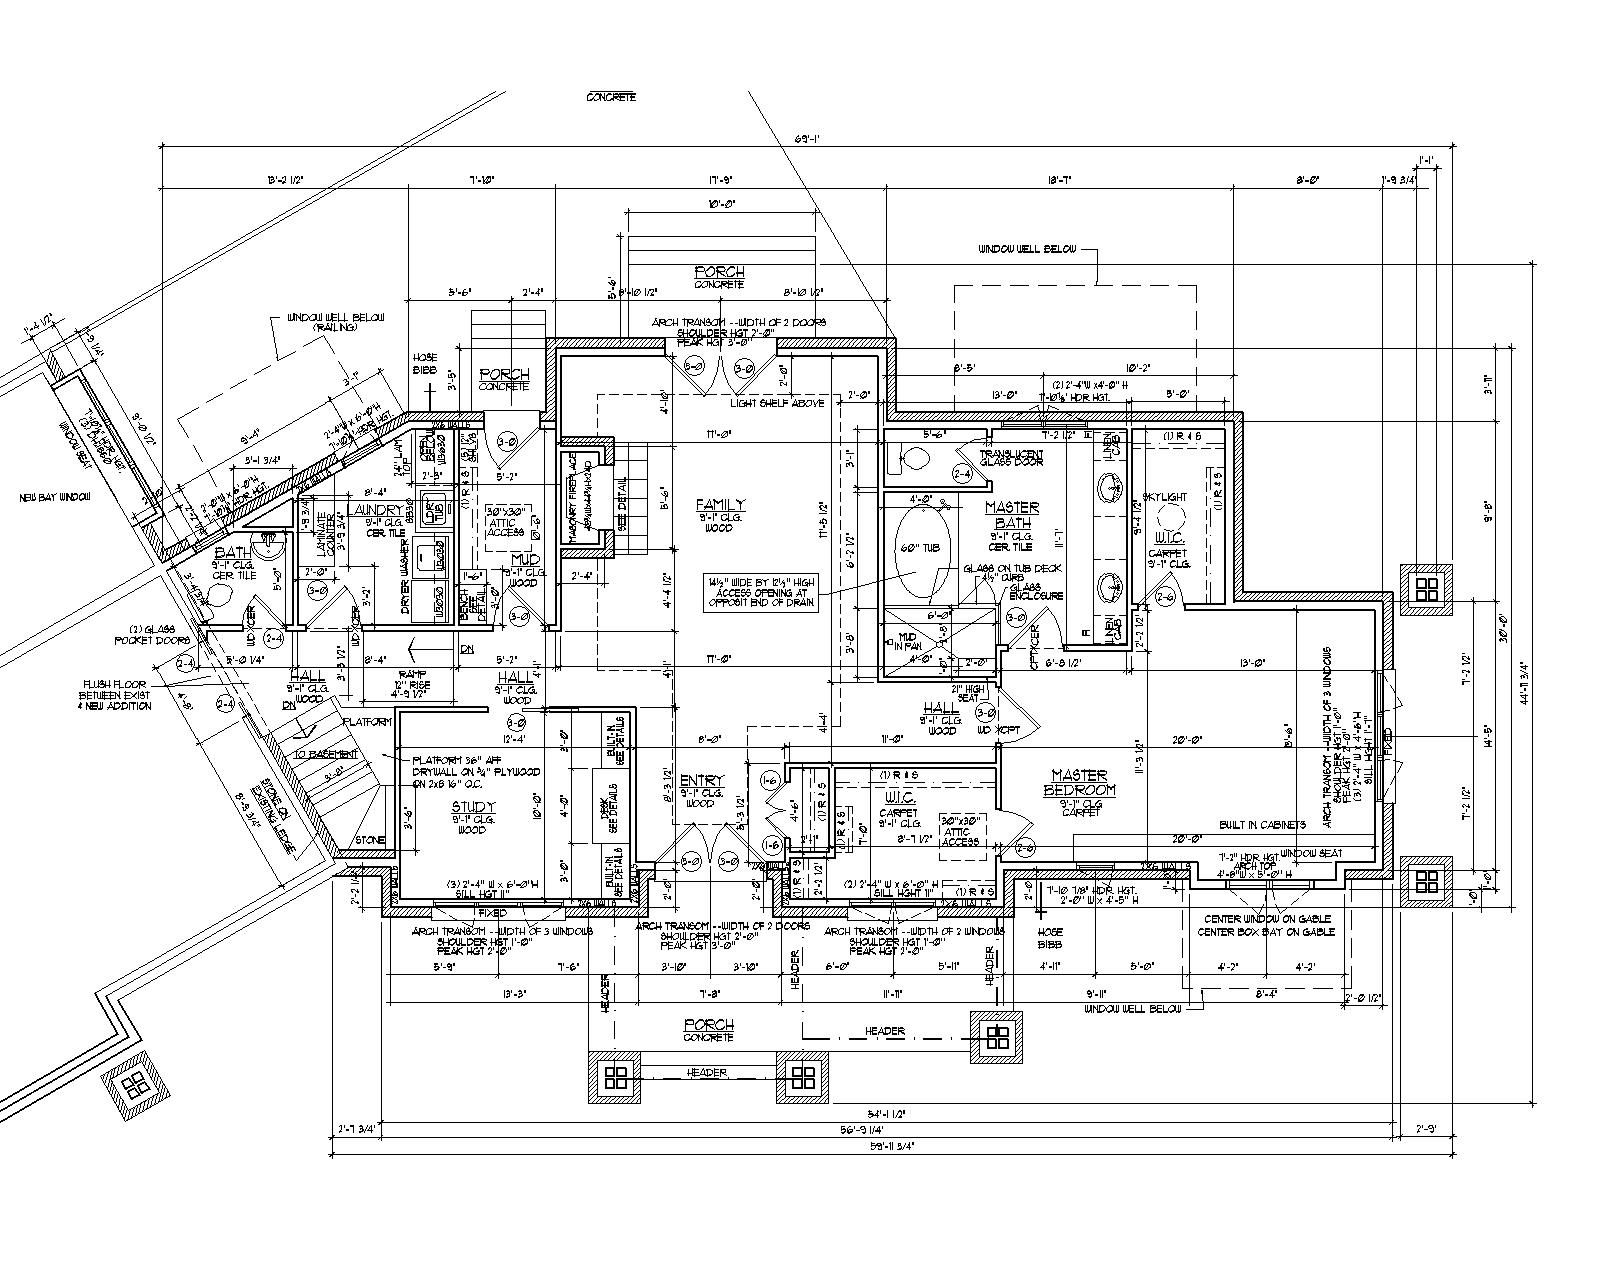 2d autocad house plans residential building drawings cad Cad house plans free